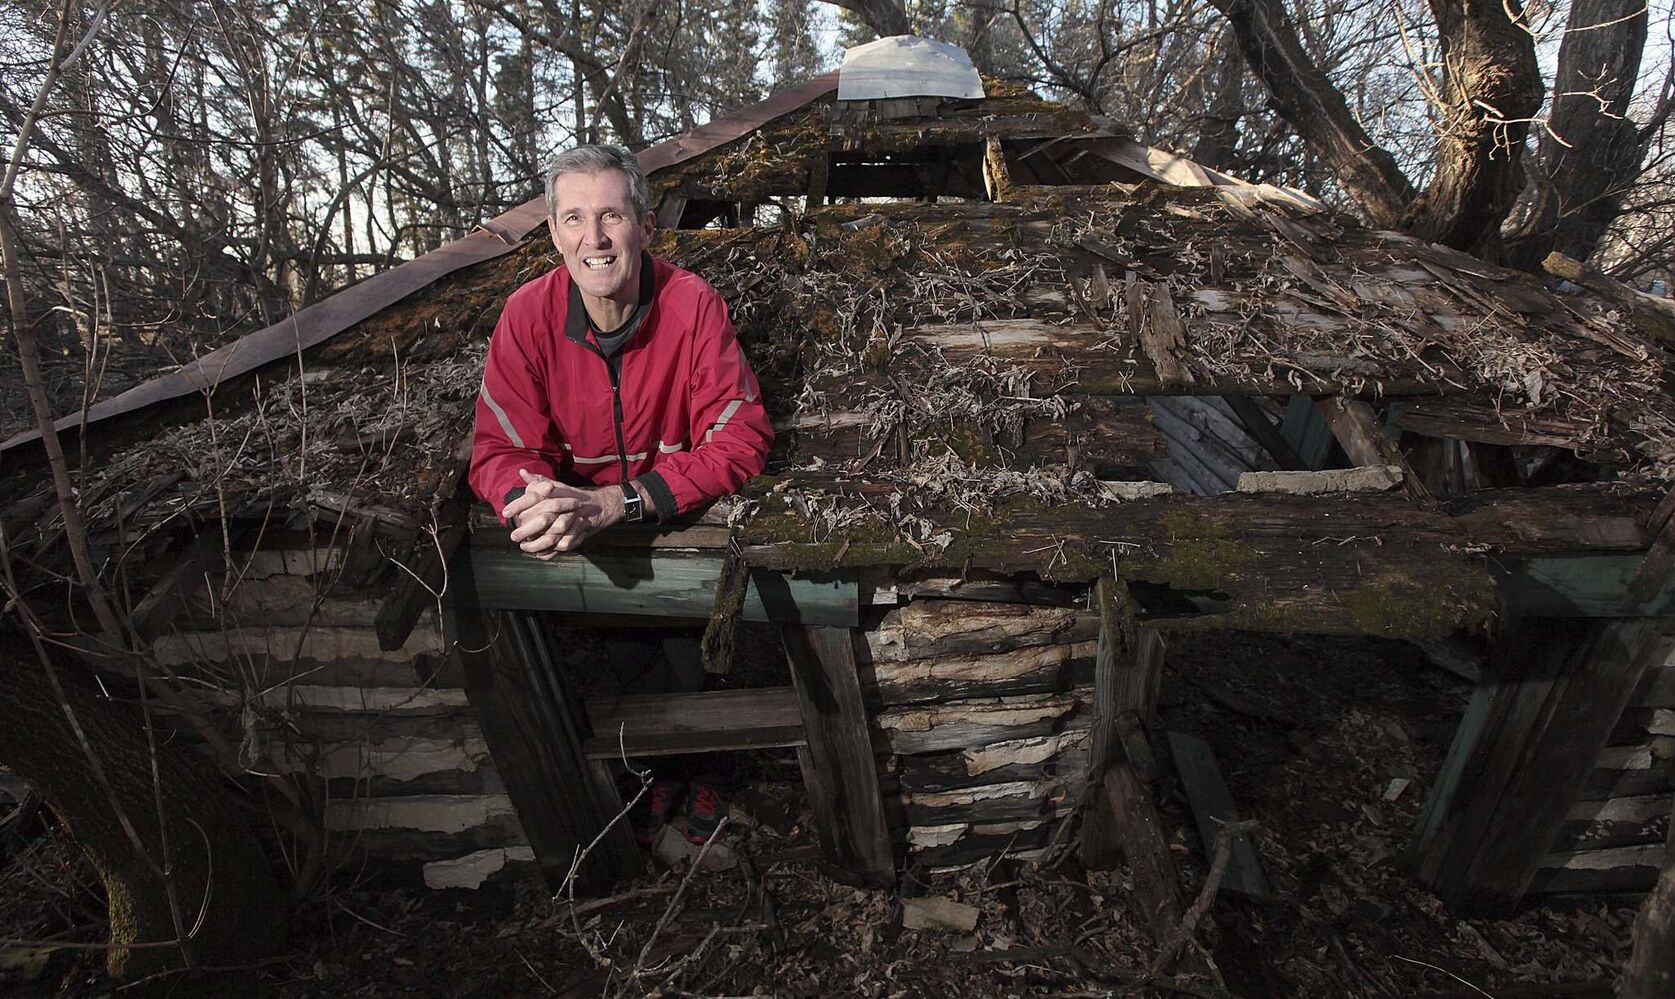 PHIL HOSSACK / WINNIPEG FREE PRESS</p><p>Pallister jokes around at the old bunkhouse built by his grandfather at the family homestead.</p></p>